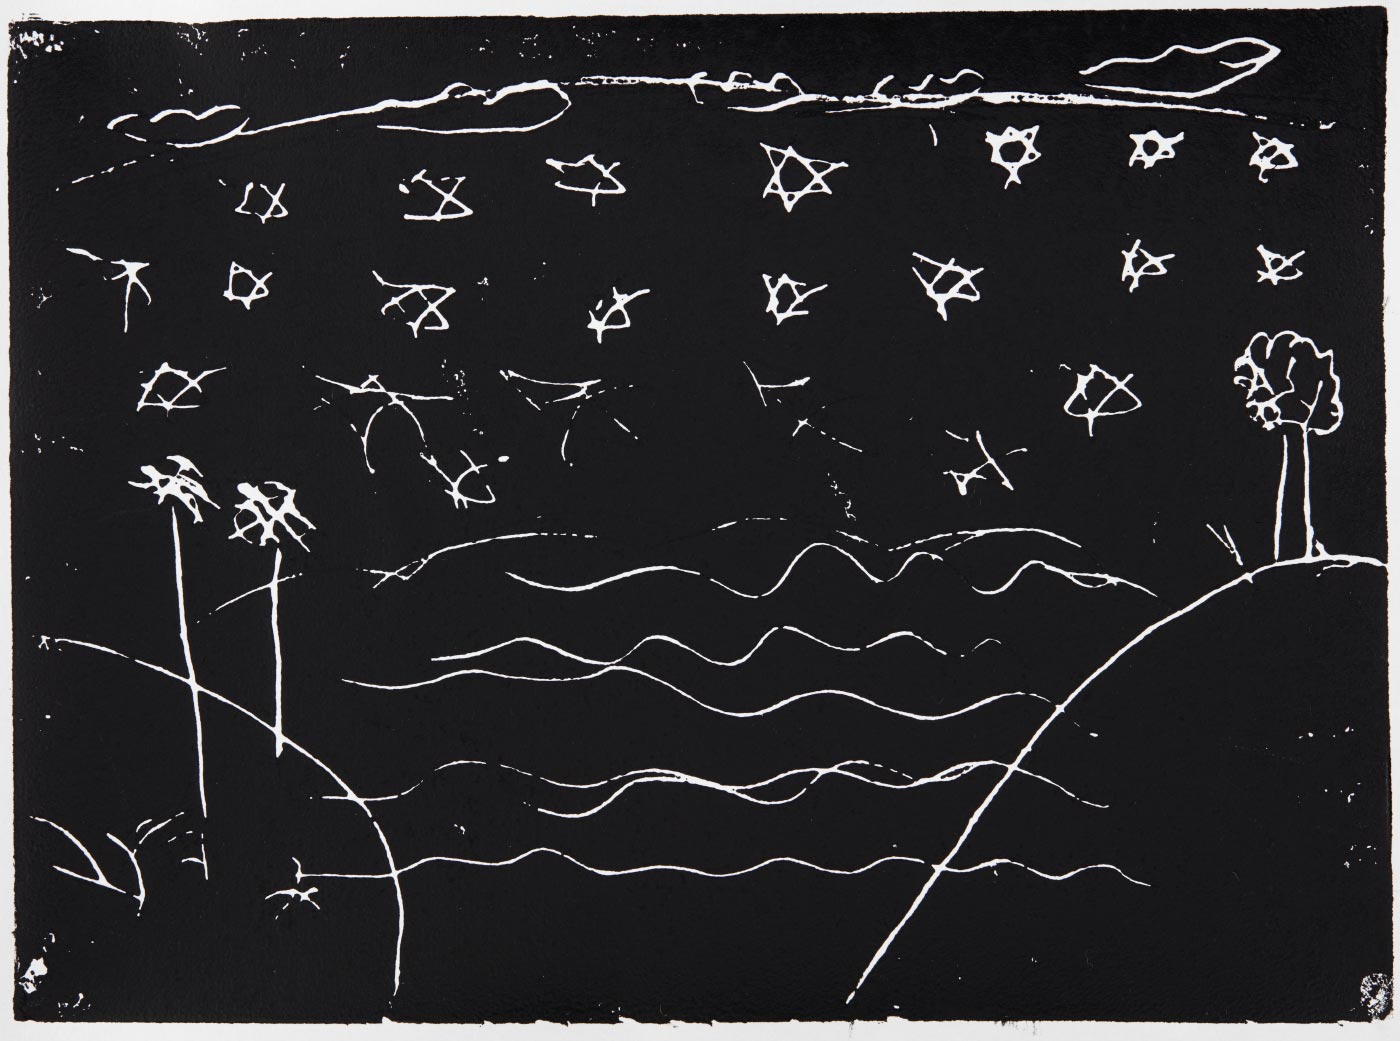 Print, black ink on white paper, depicting water between two headlands with stars above. Annotated in pencil 'Carmen'. - click to view larger image